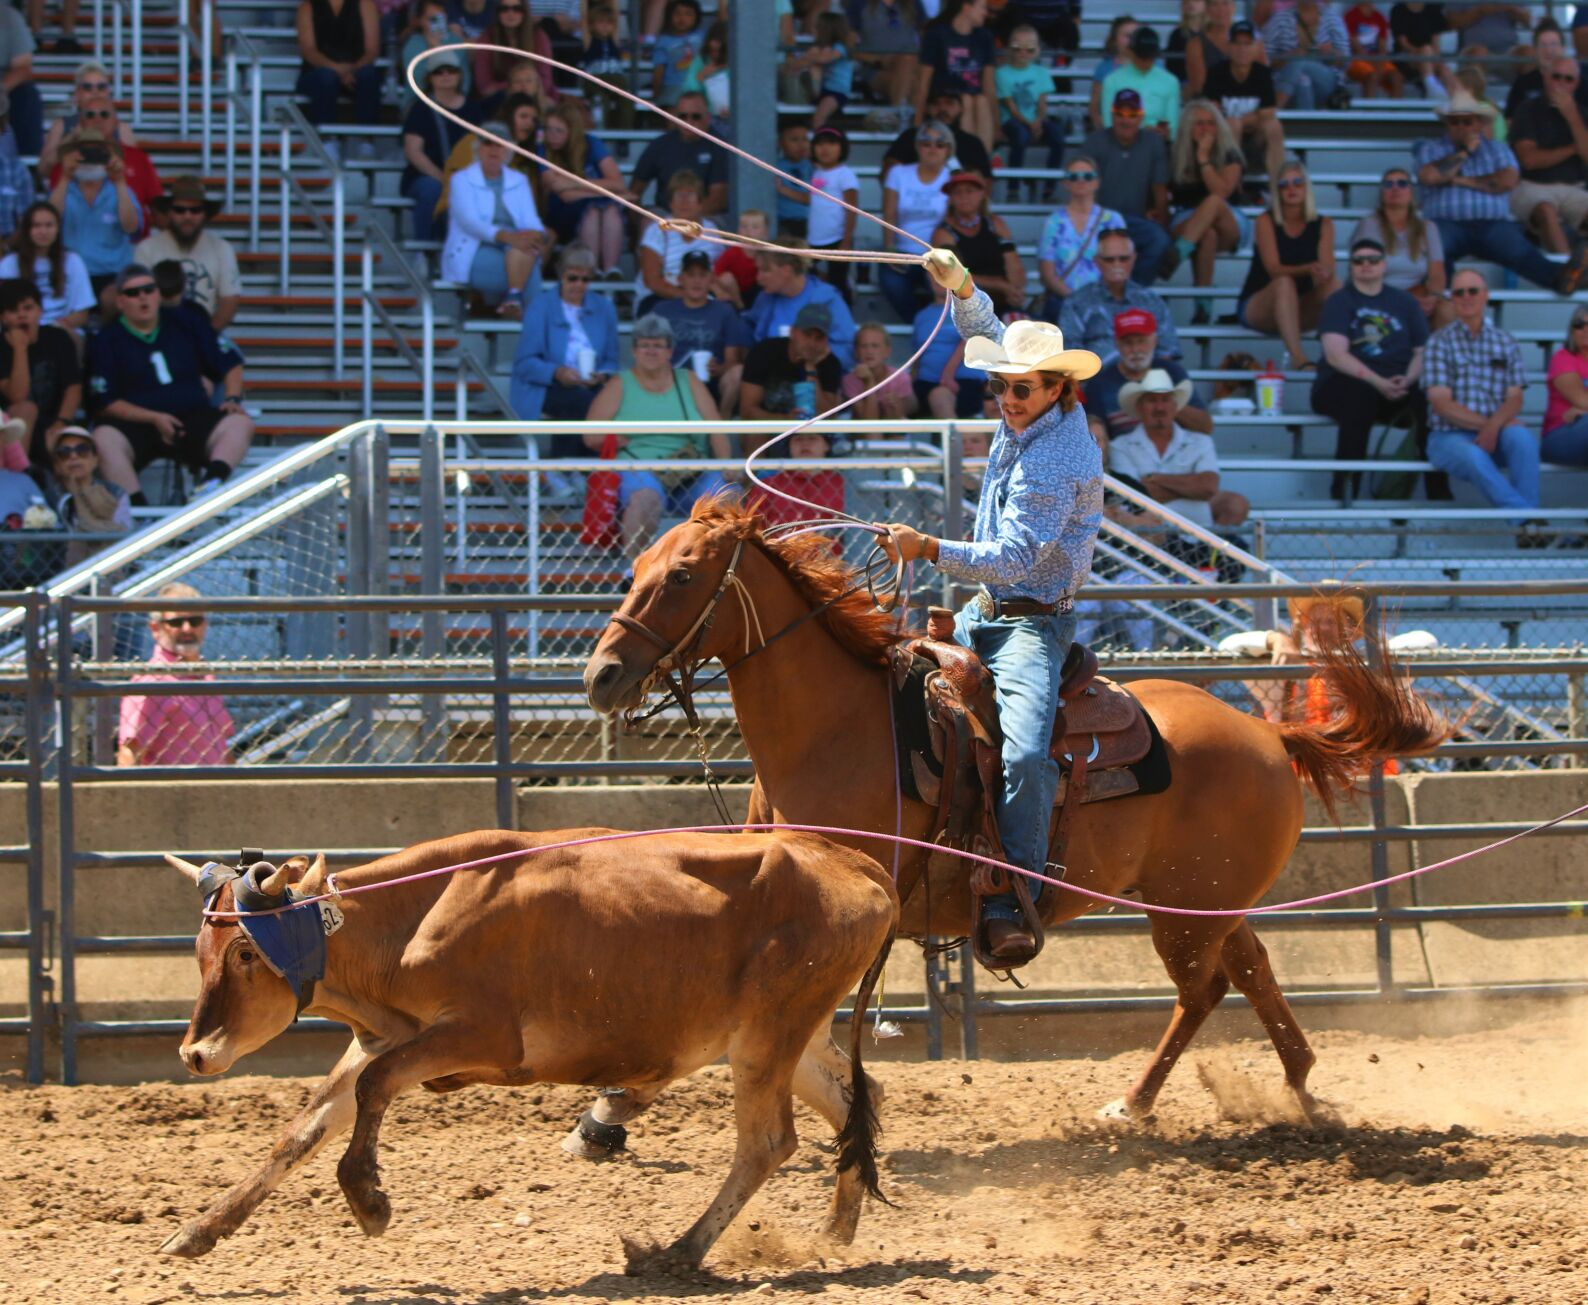 ELKHART COUNTY FAIR: Hawkins takes part in hometown rodeo